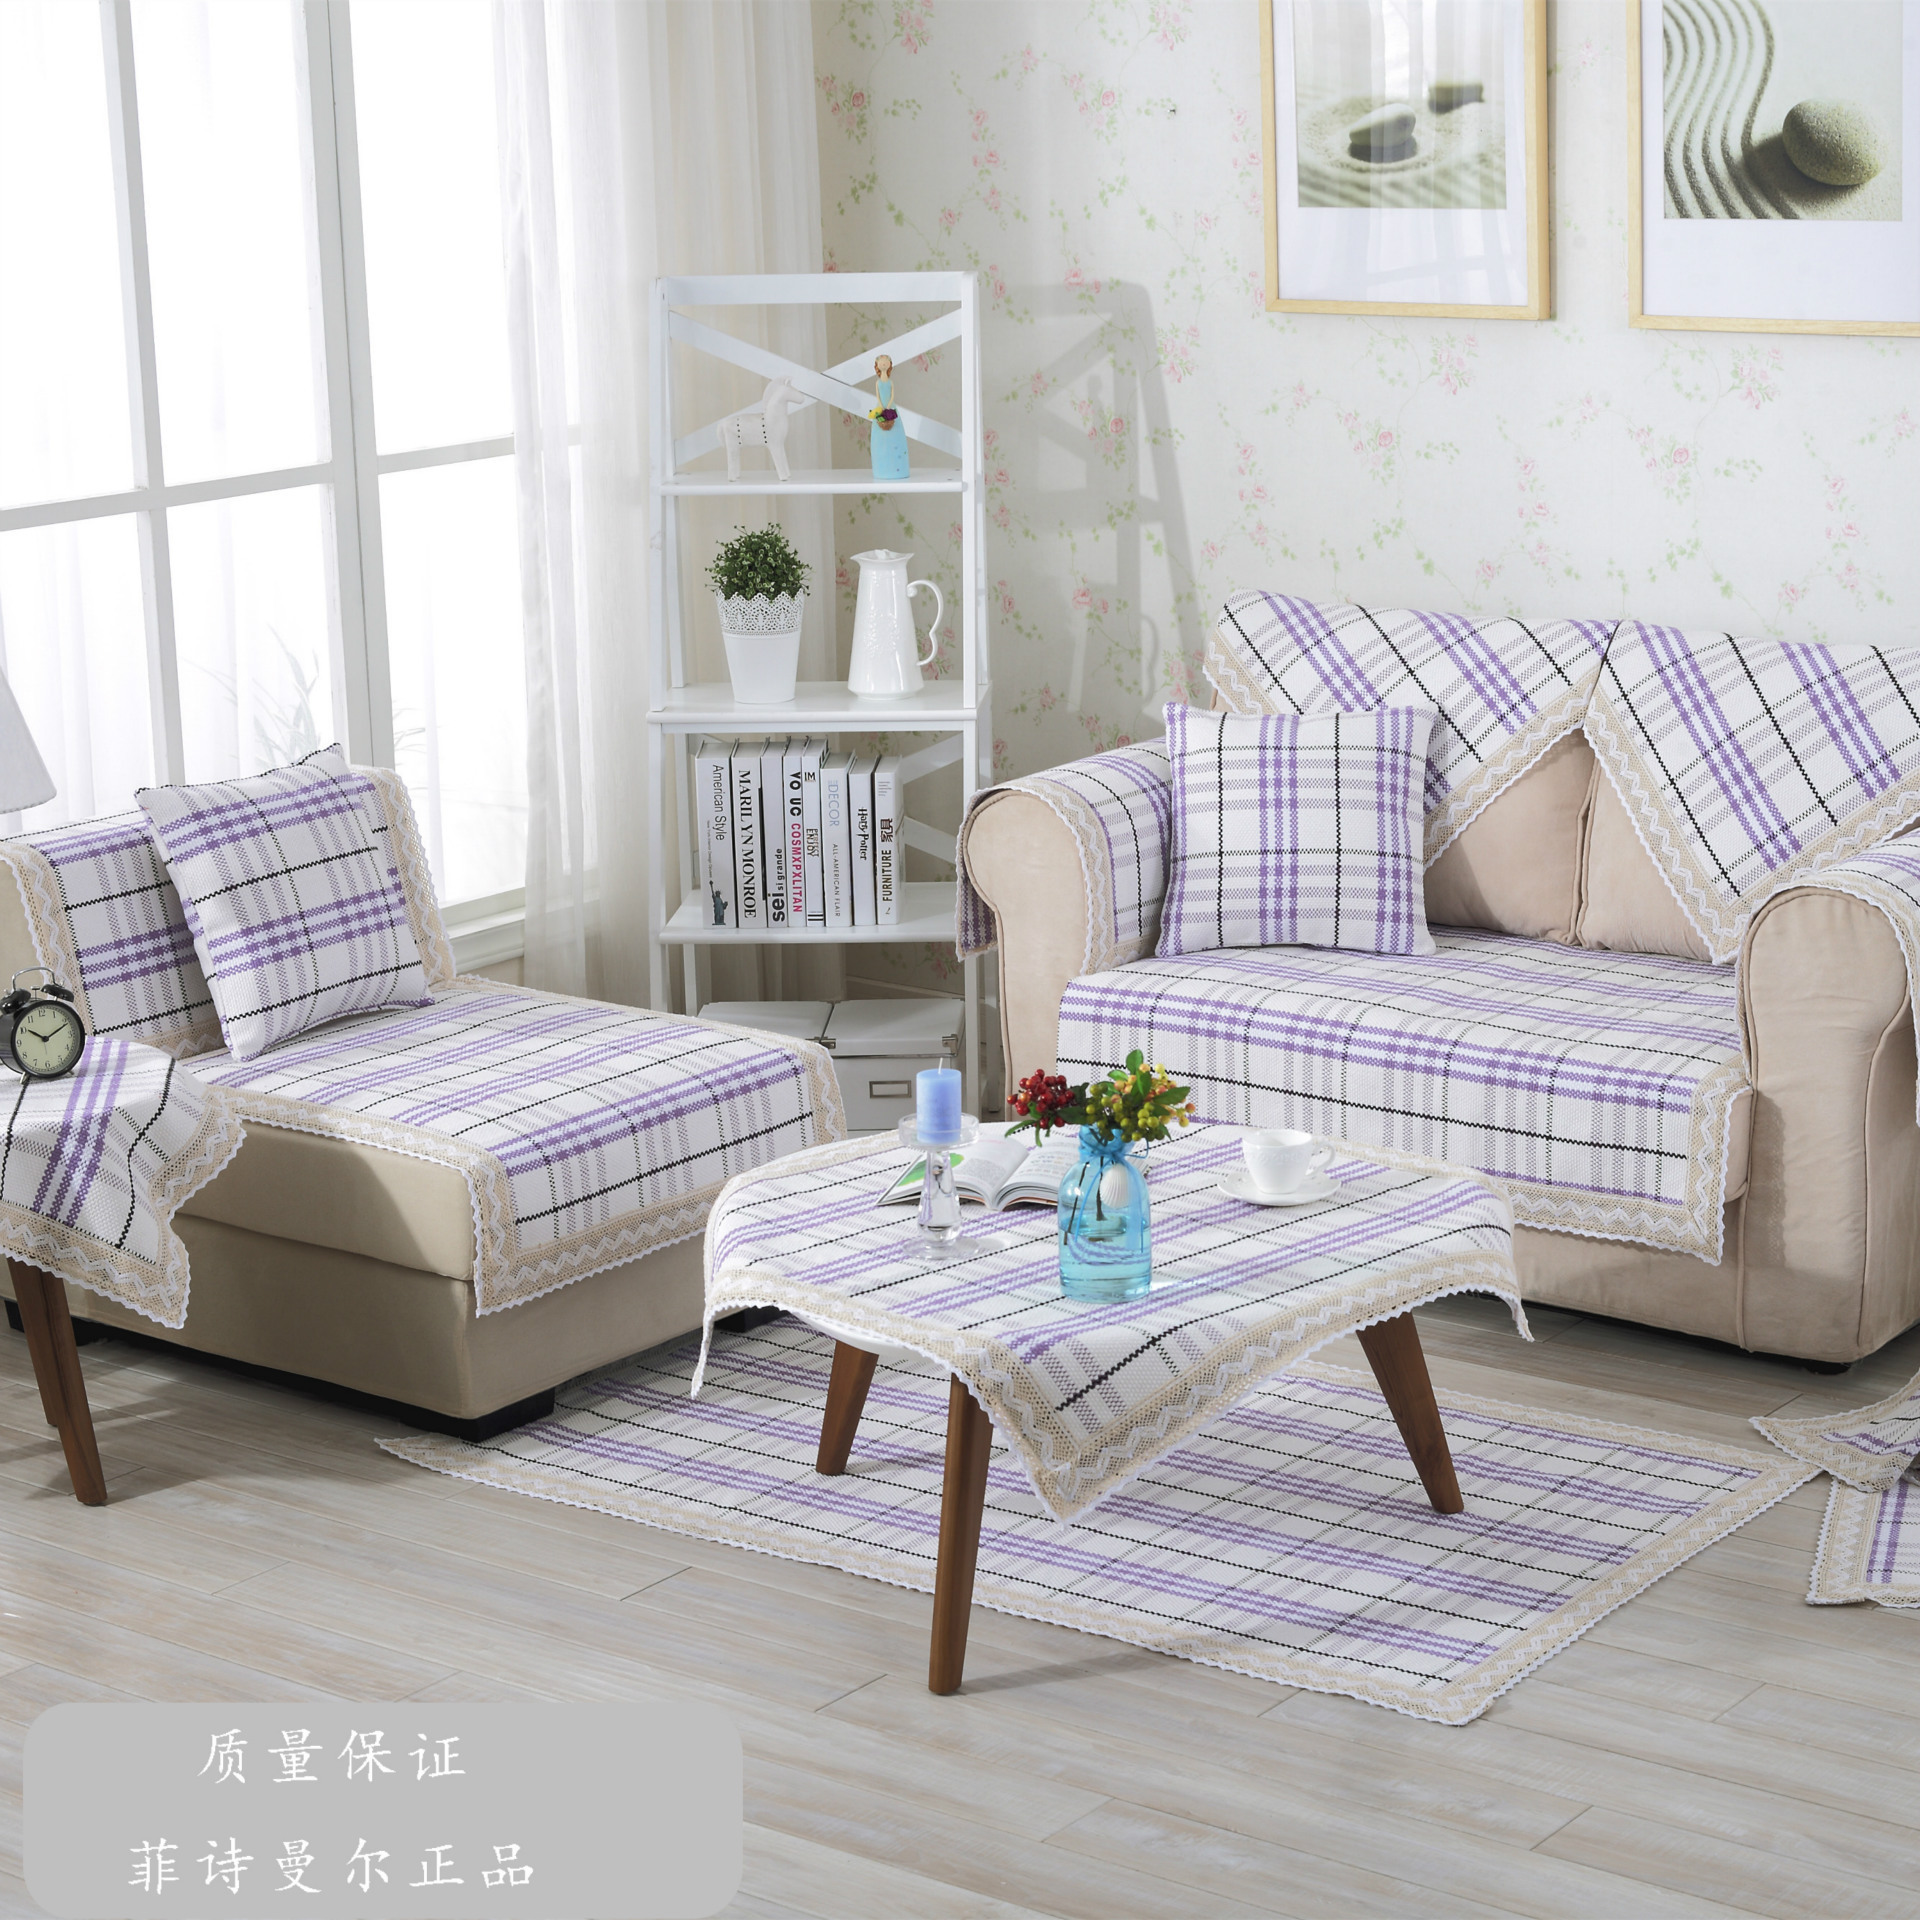 pare Prices on Modern Fabric Sofa bination line Shopping